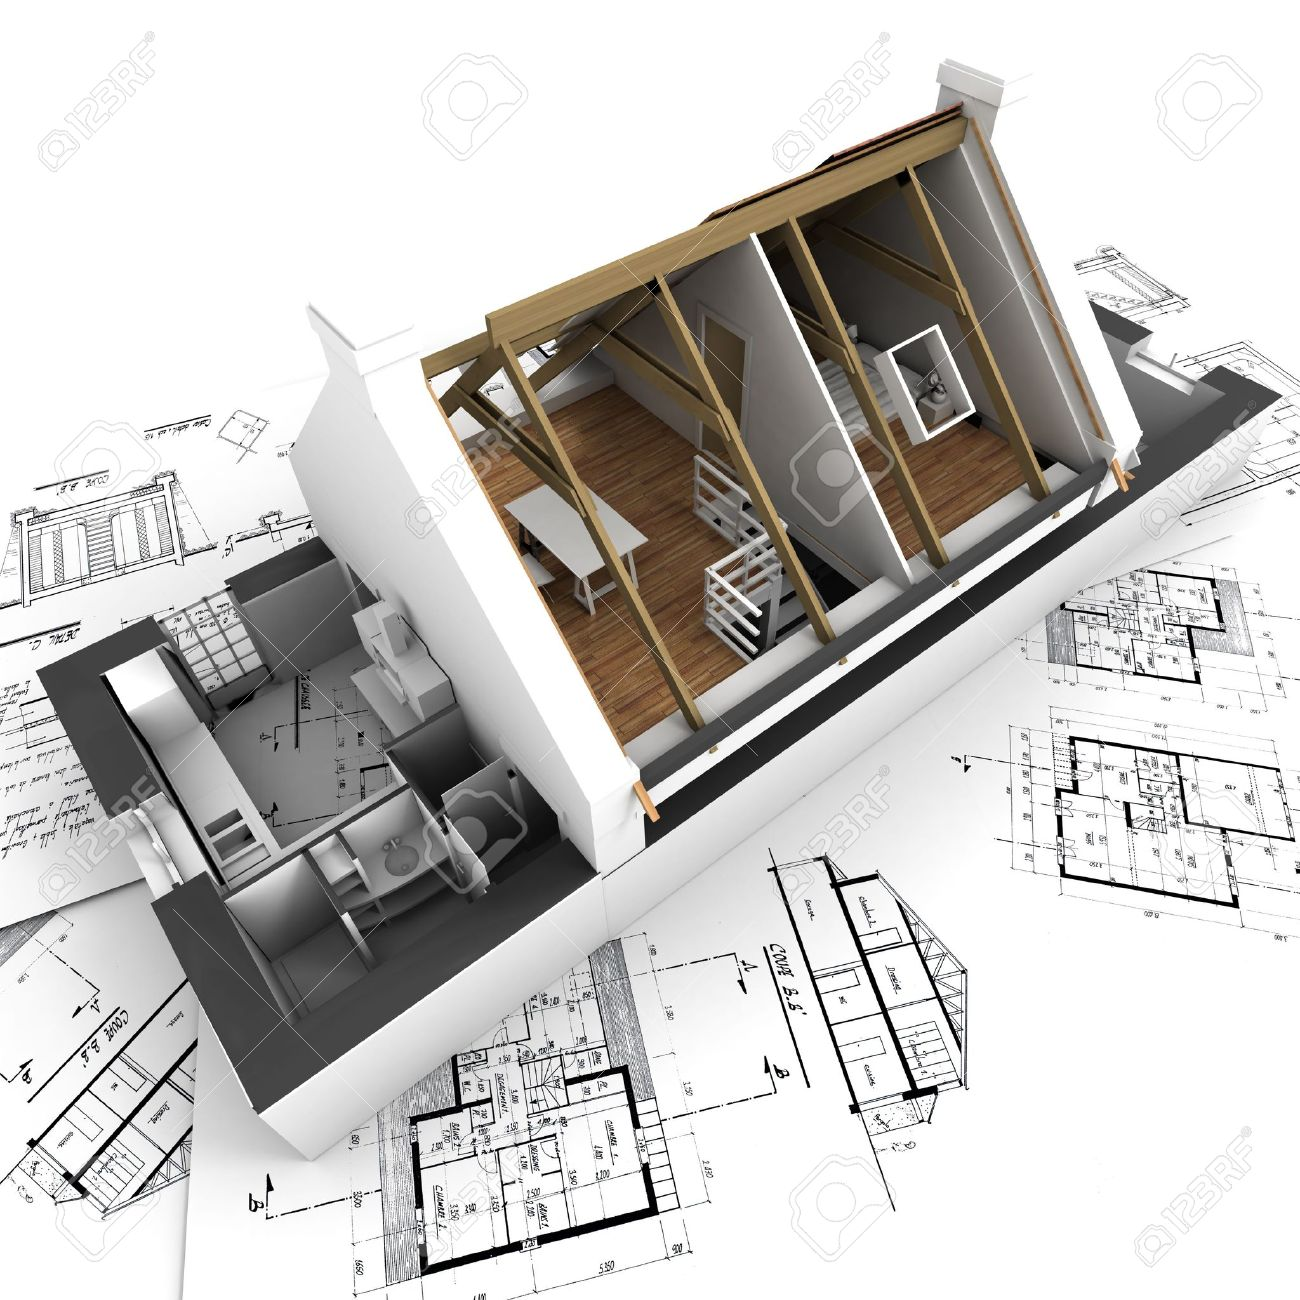 3D Rendering Of A Roofless House On Top Of Architect Plans Stock Photo    2472078